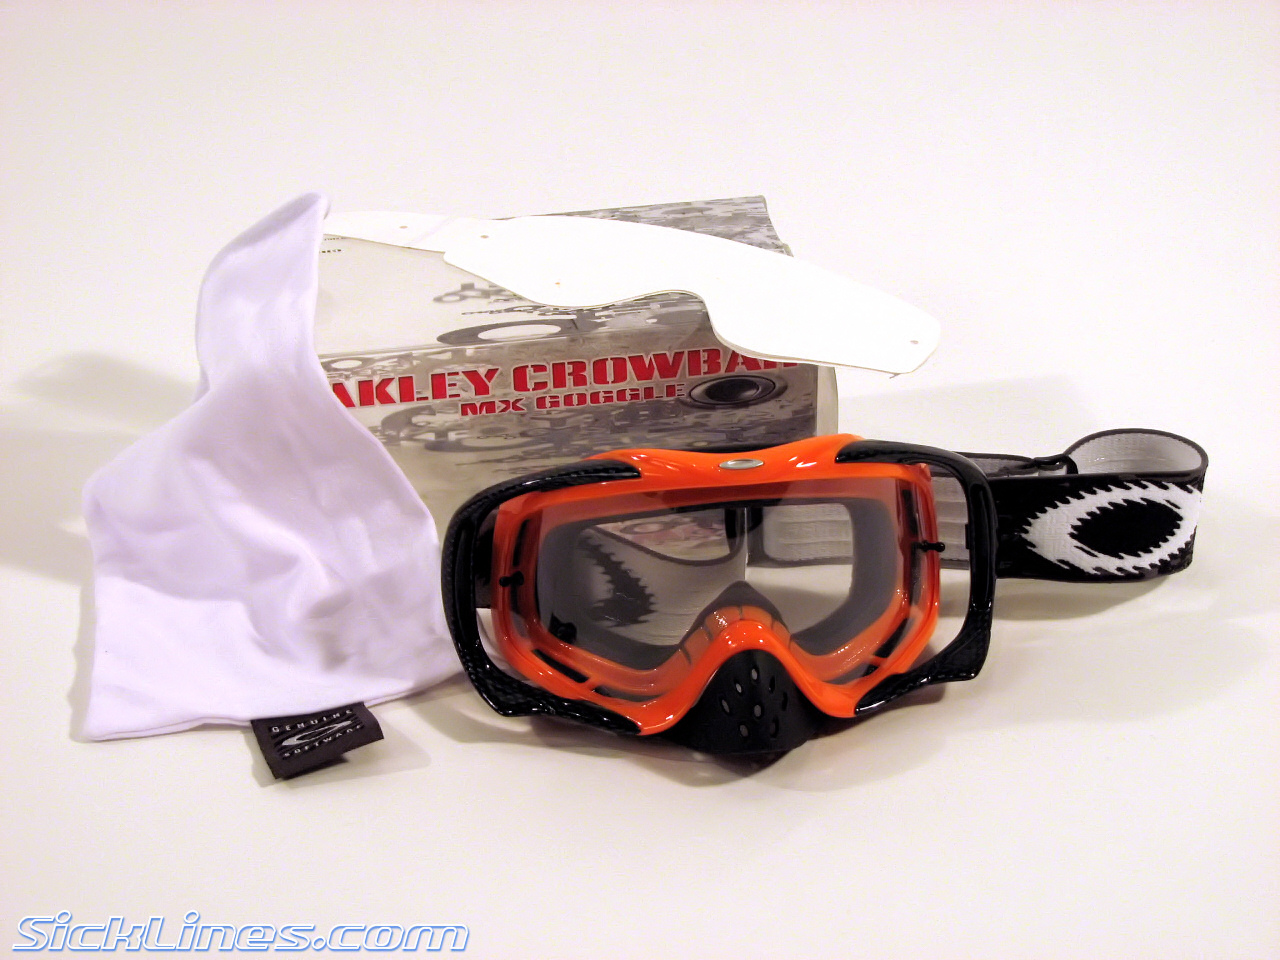 Oakley Crowbar Goggles Review